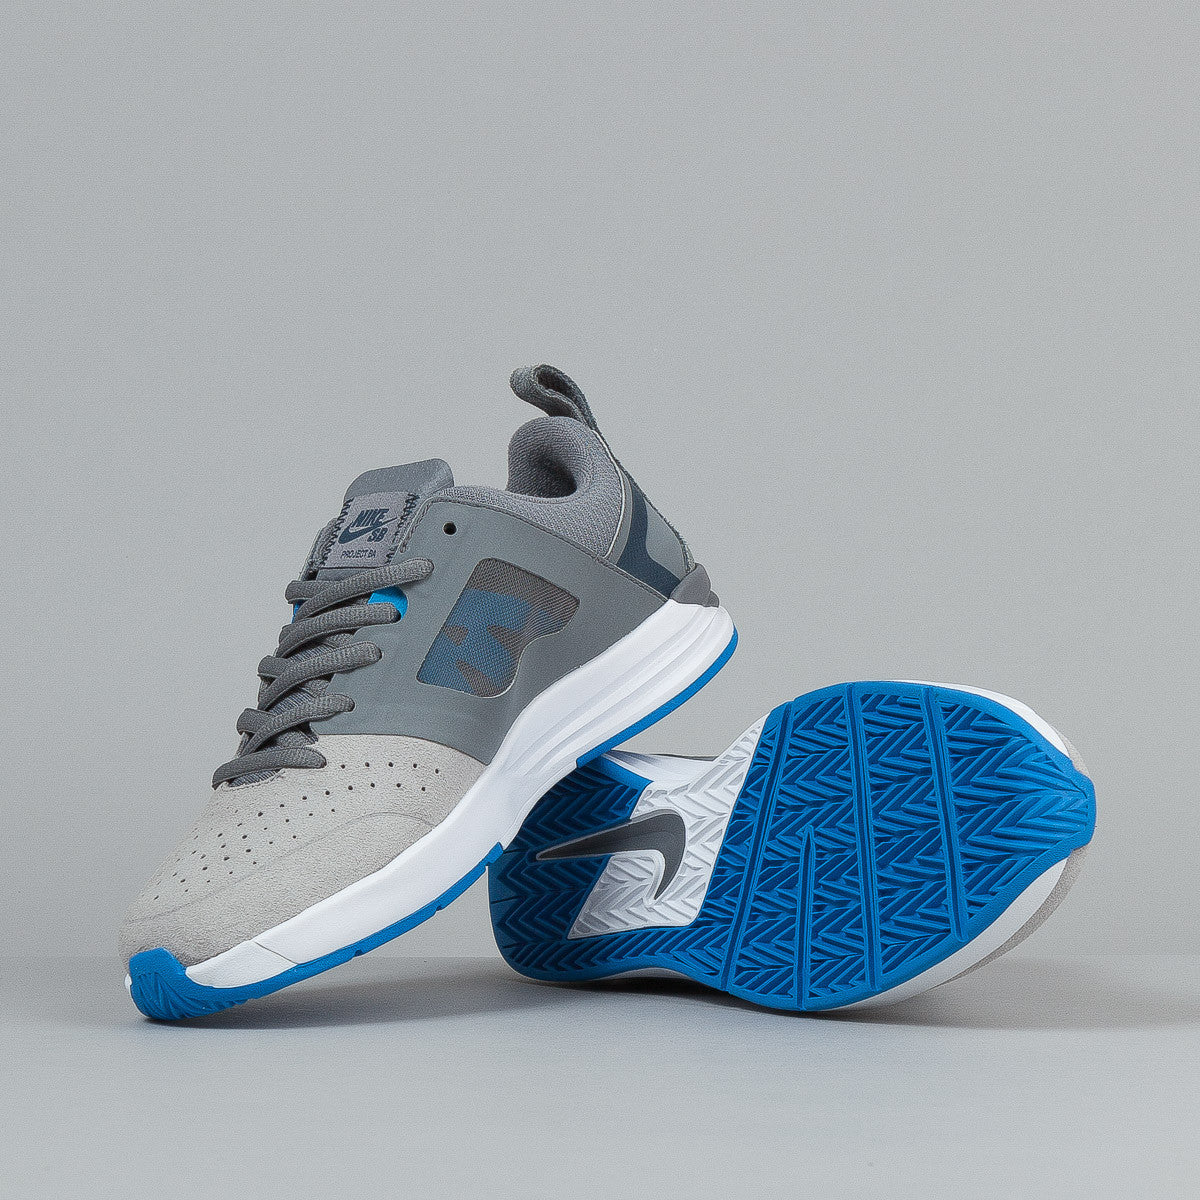 Nike SB Project BA Shoes - Cool Grey / Armory Navy / Metallic Silver